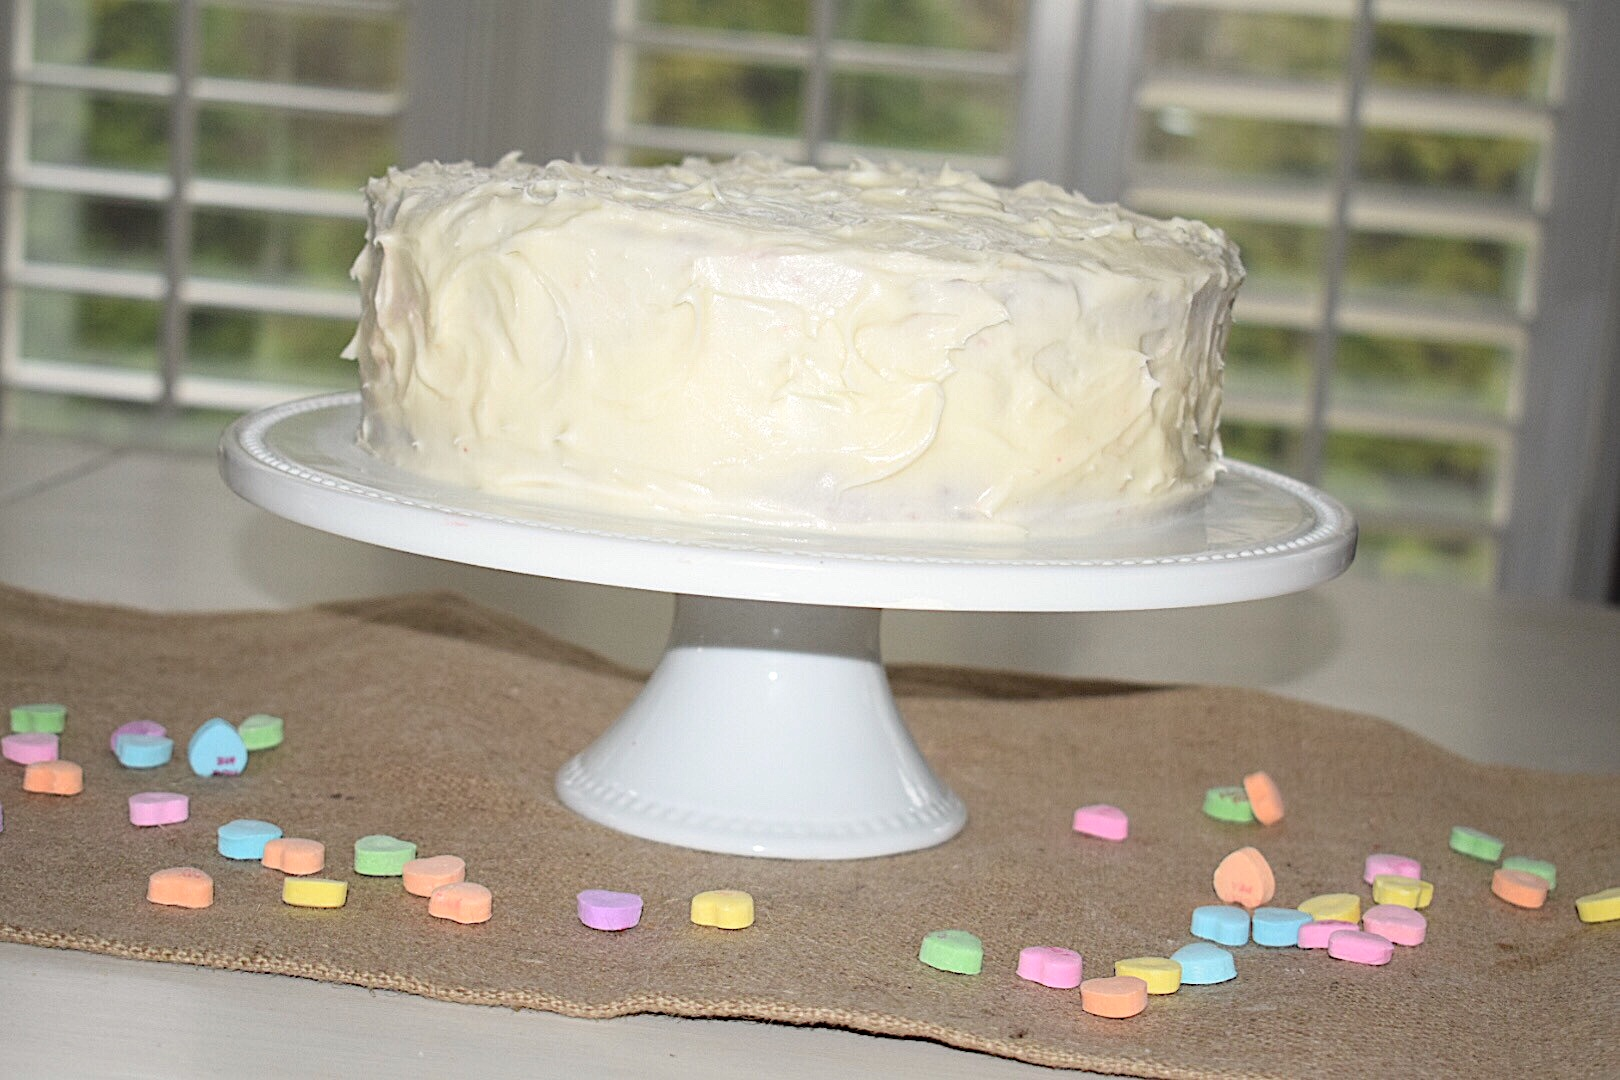 A homemade red velvet cake with white cream cheese frosting on a white cake plate with conversation hearts